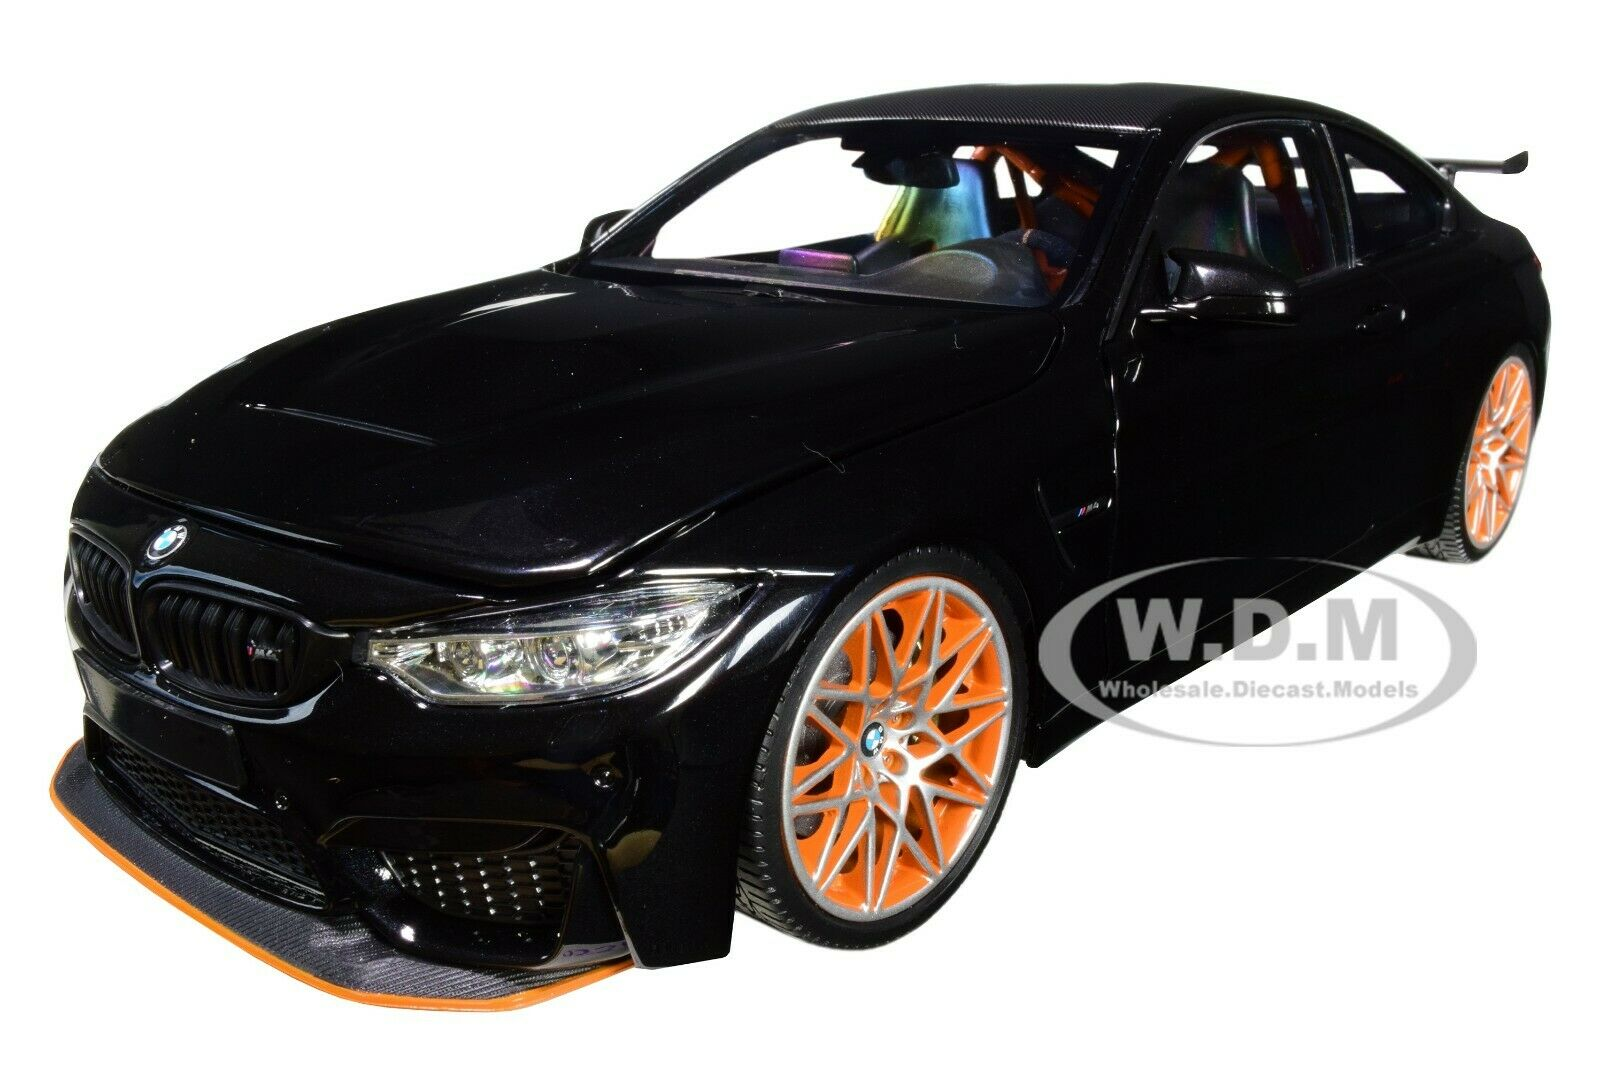 Bmw M2 Competition 2019 Black Metallic 1 18 155028001 Minichamps For Sale Online Ebay